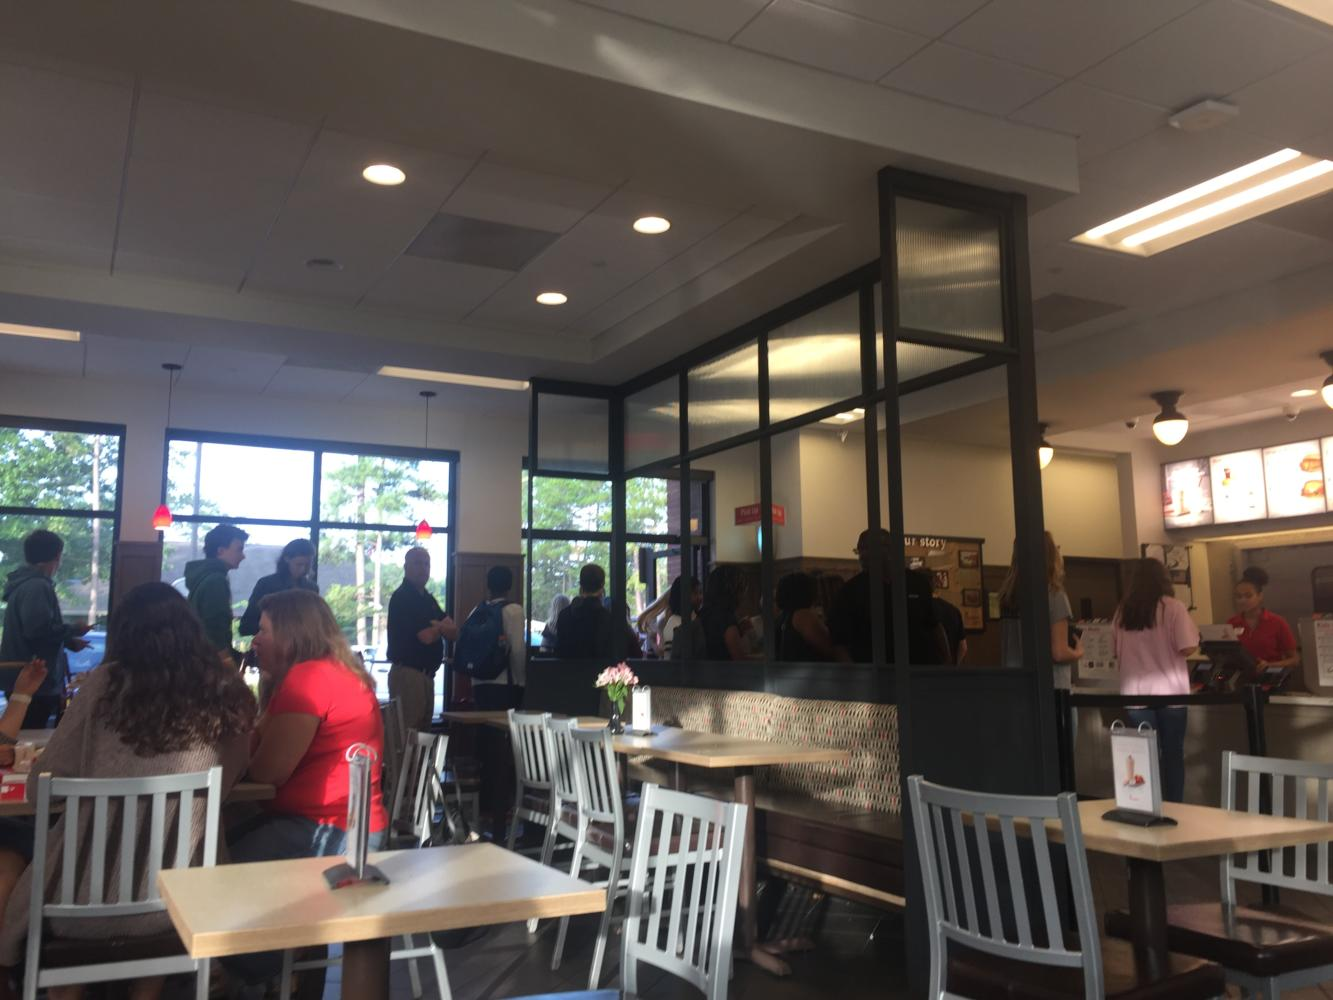 Line for free Chick-fil-A reaches out the door.